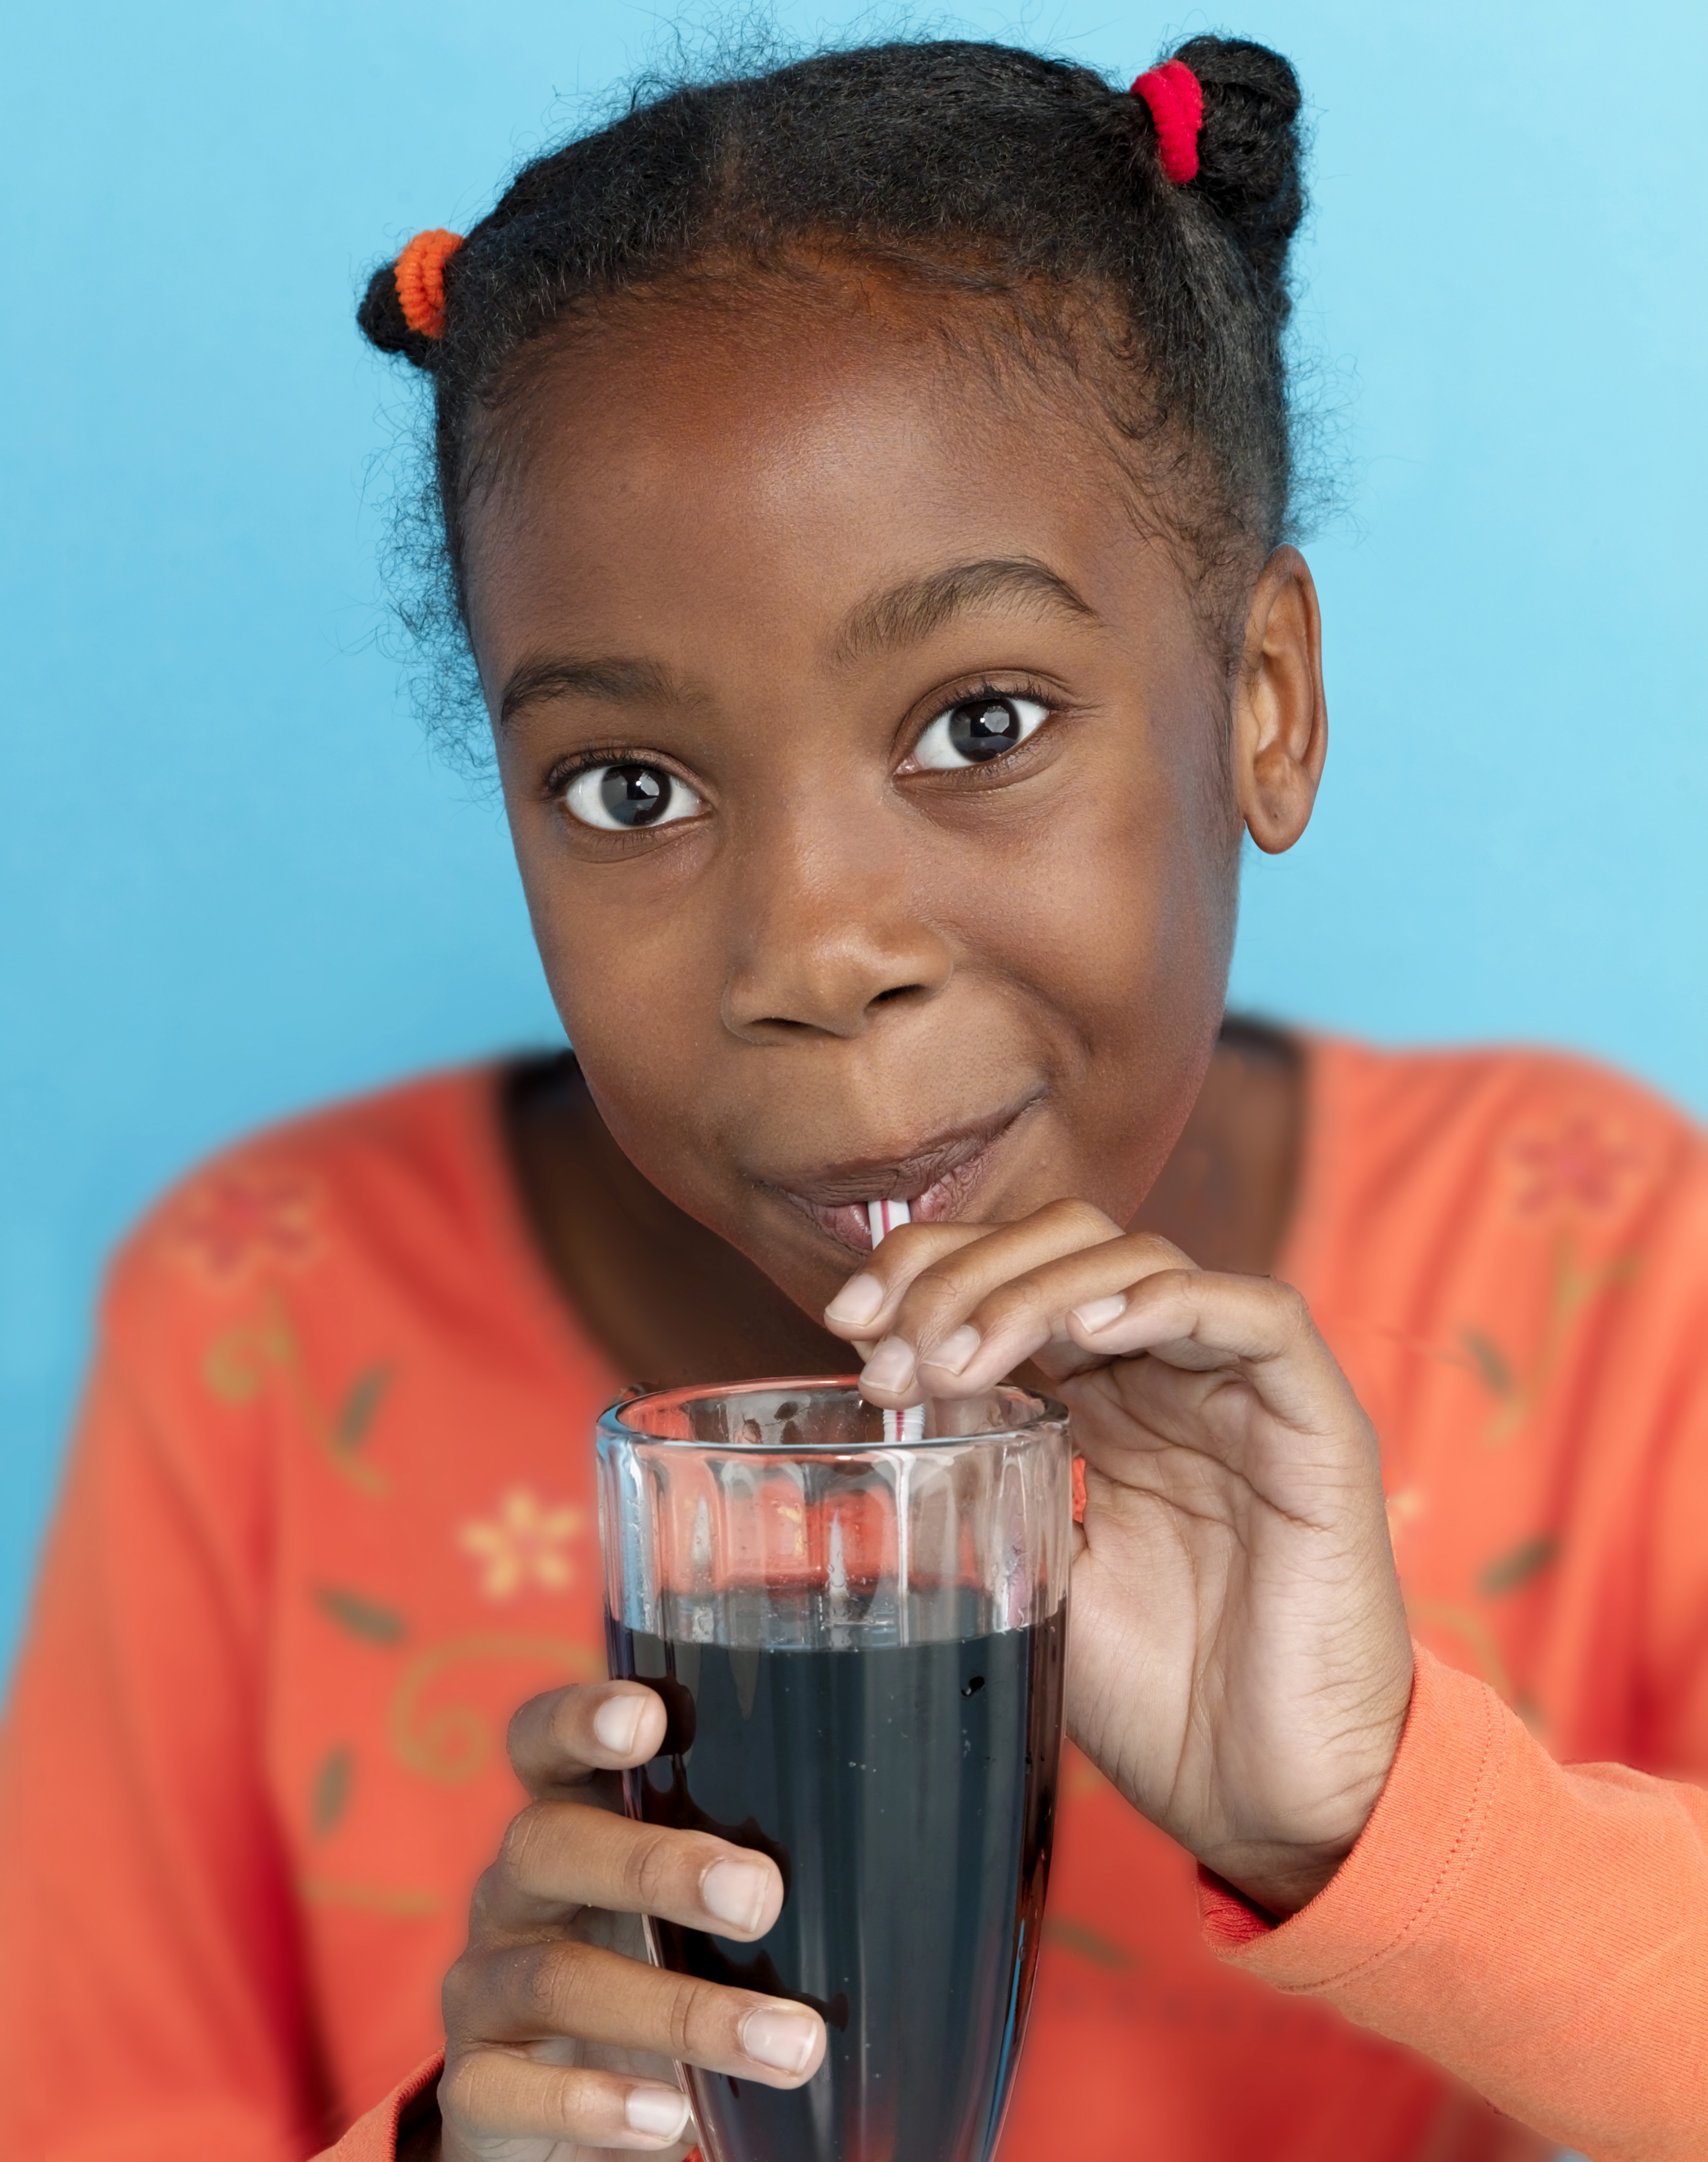 girl drinking root beer with straw